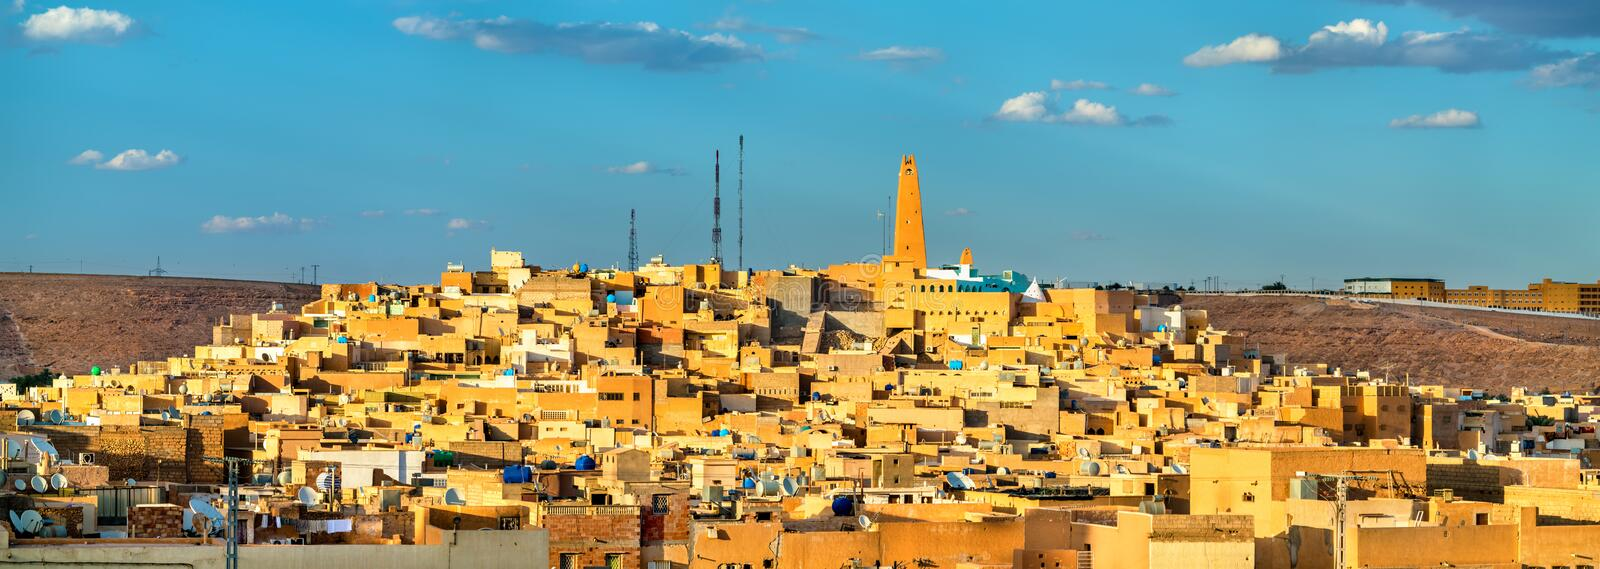 View of Ghardaia, a city in the Mzab Valley. UNESCO world heritage in Algeria royalty free stock photography